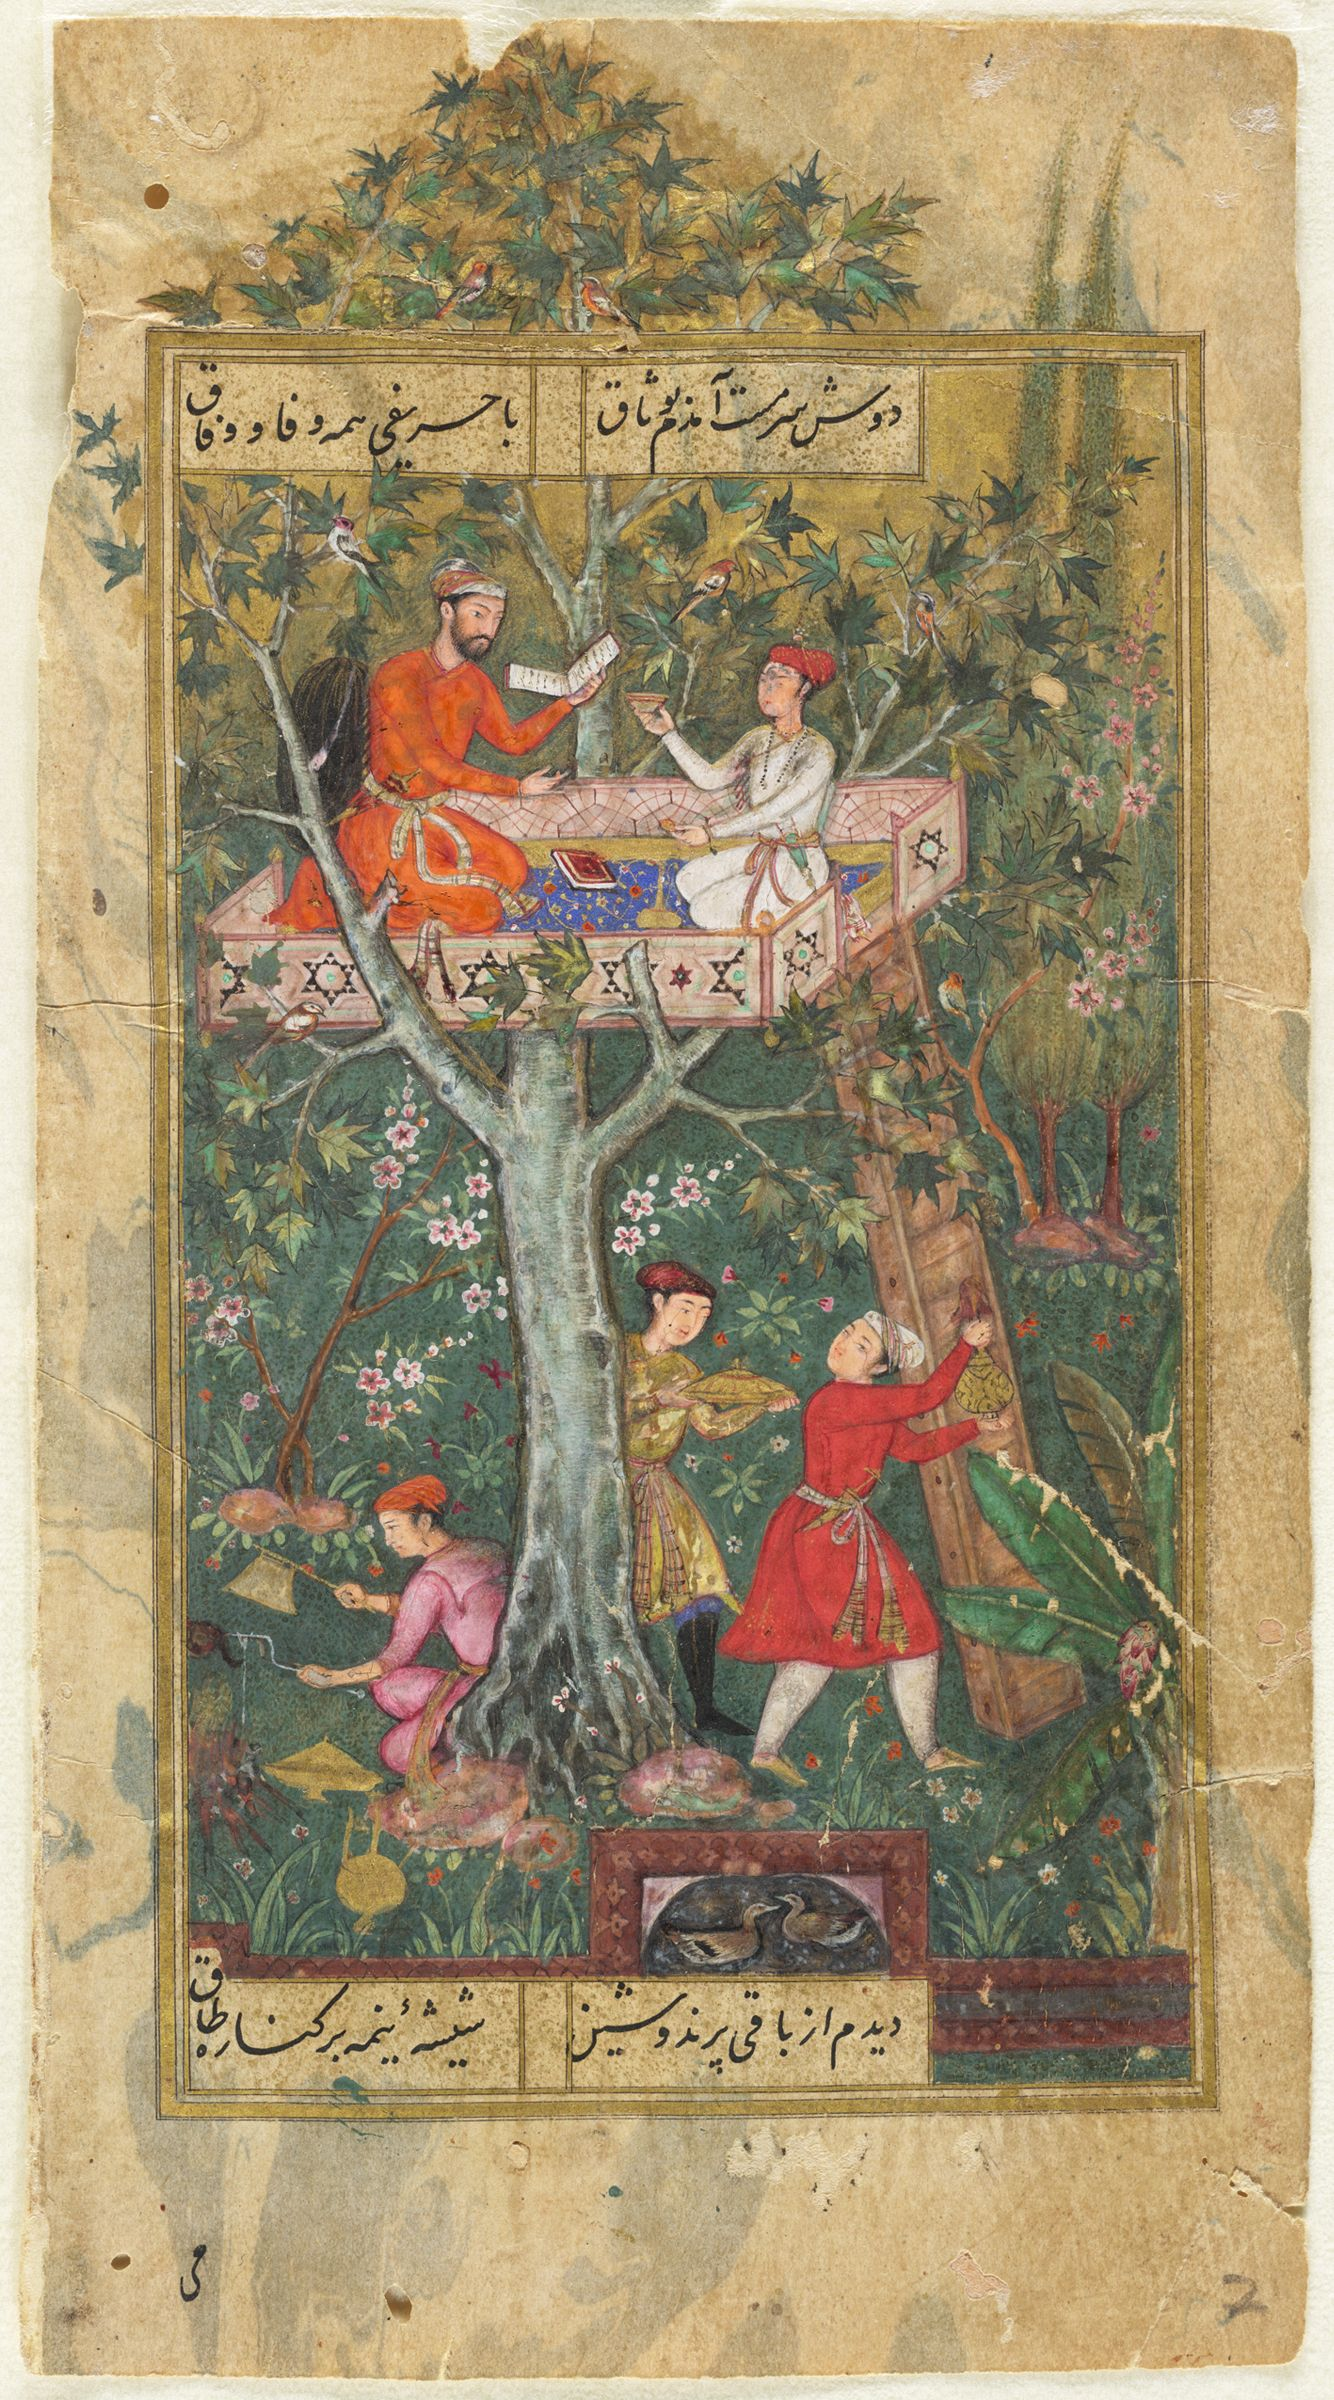 Anvari Entertains In A Summer House (Painting, Verso; Text, Recto), Folio 109 From A Manuscript Of The Divan Of Anvari